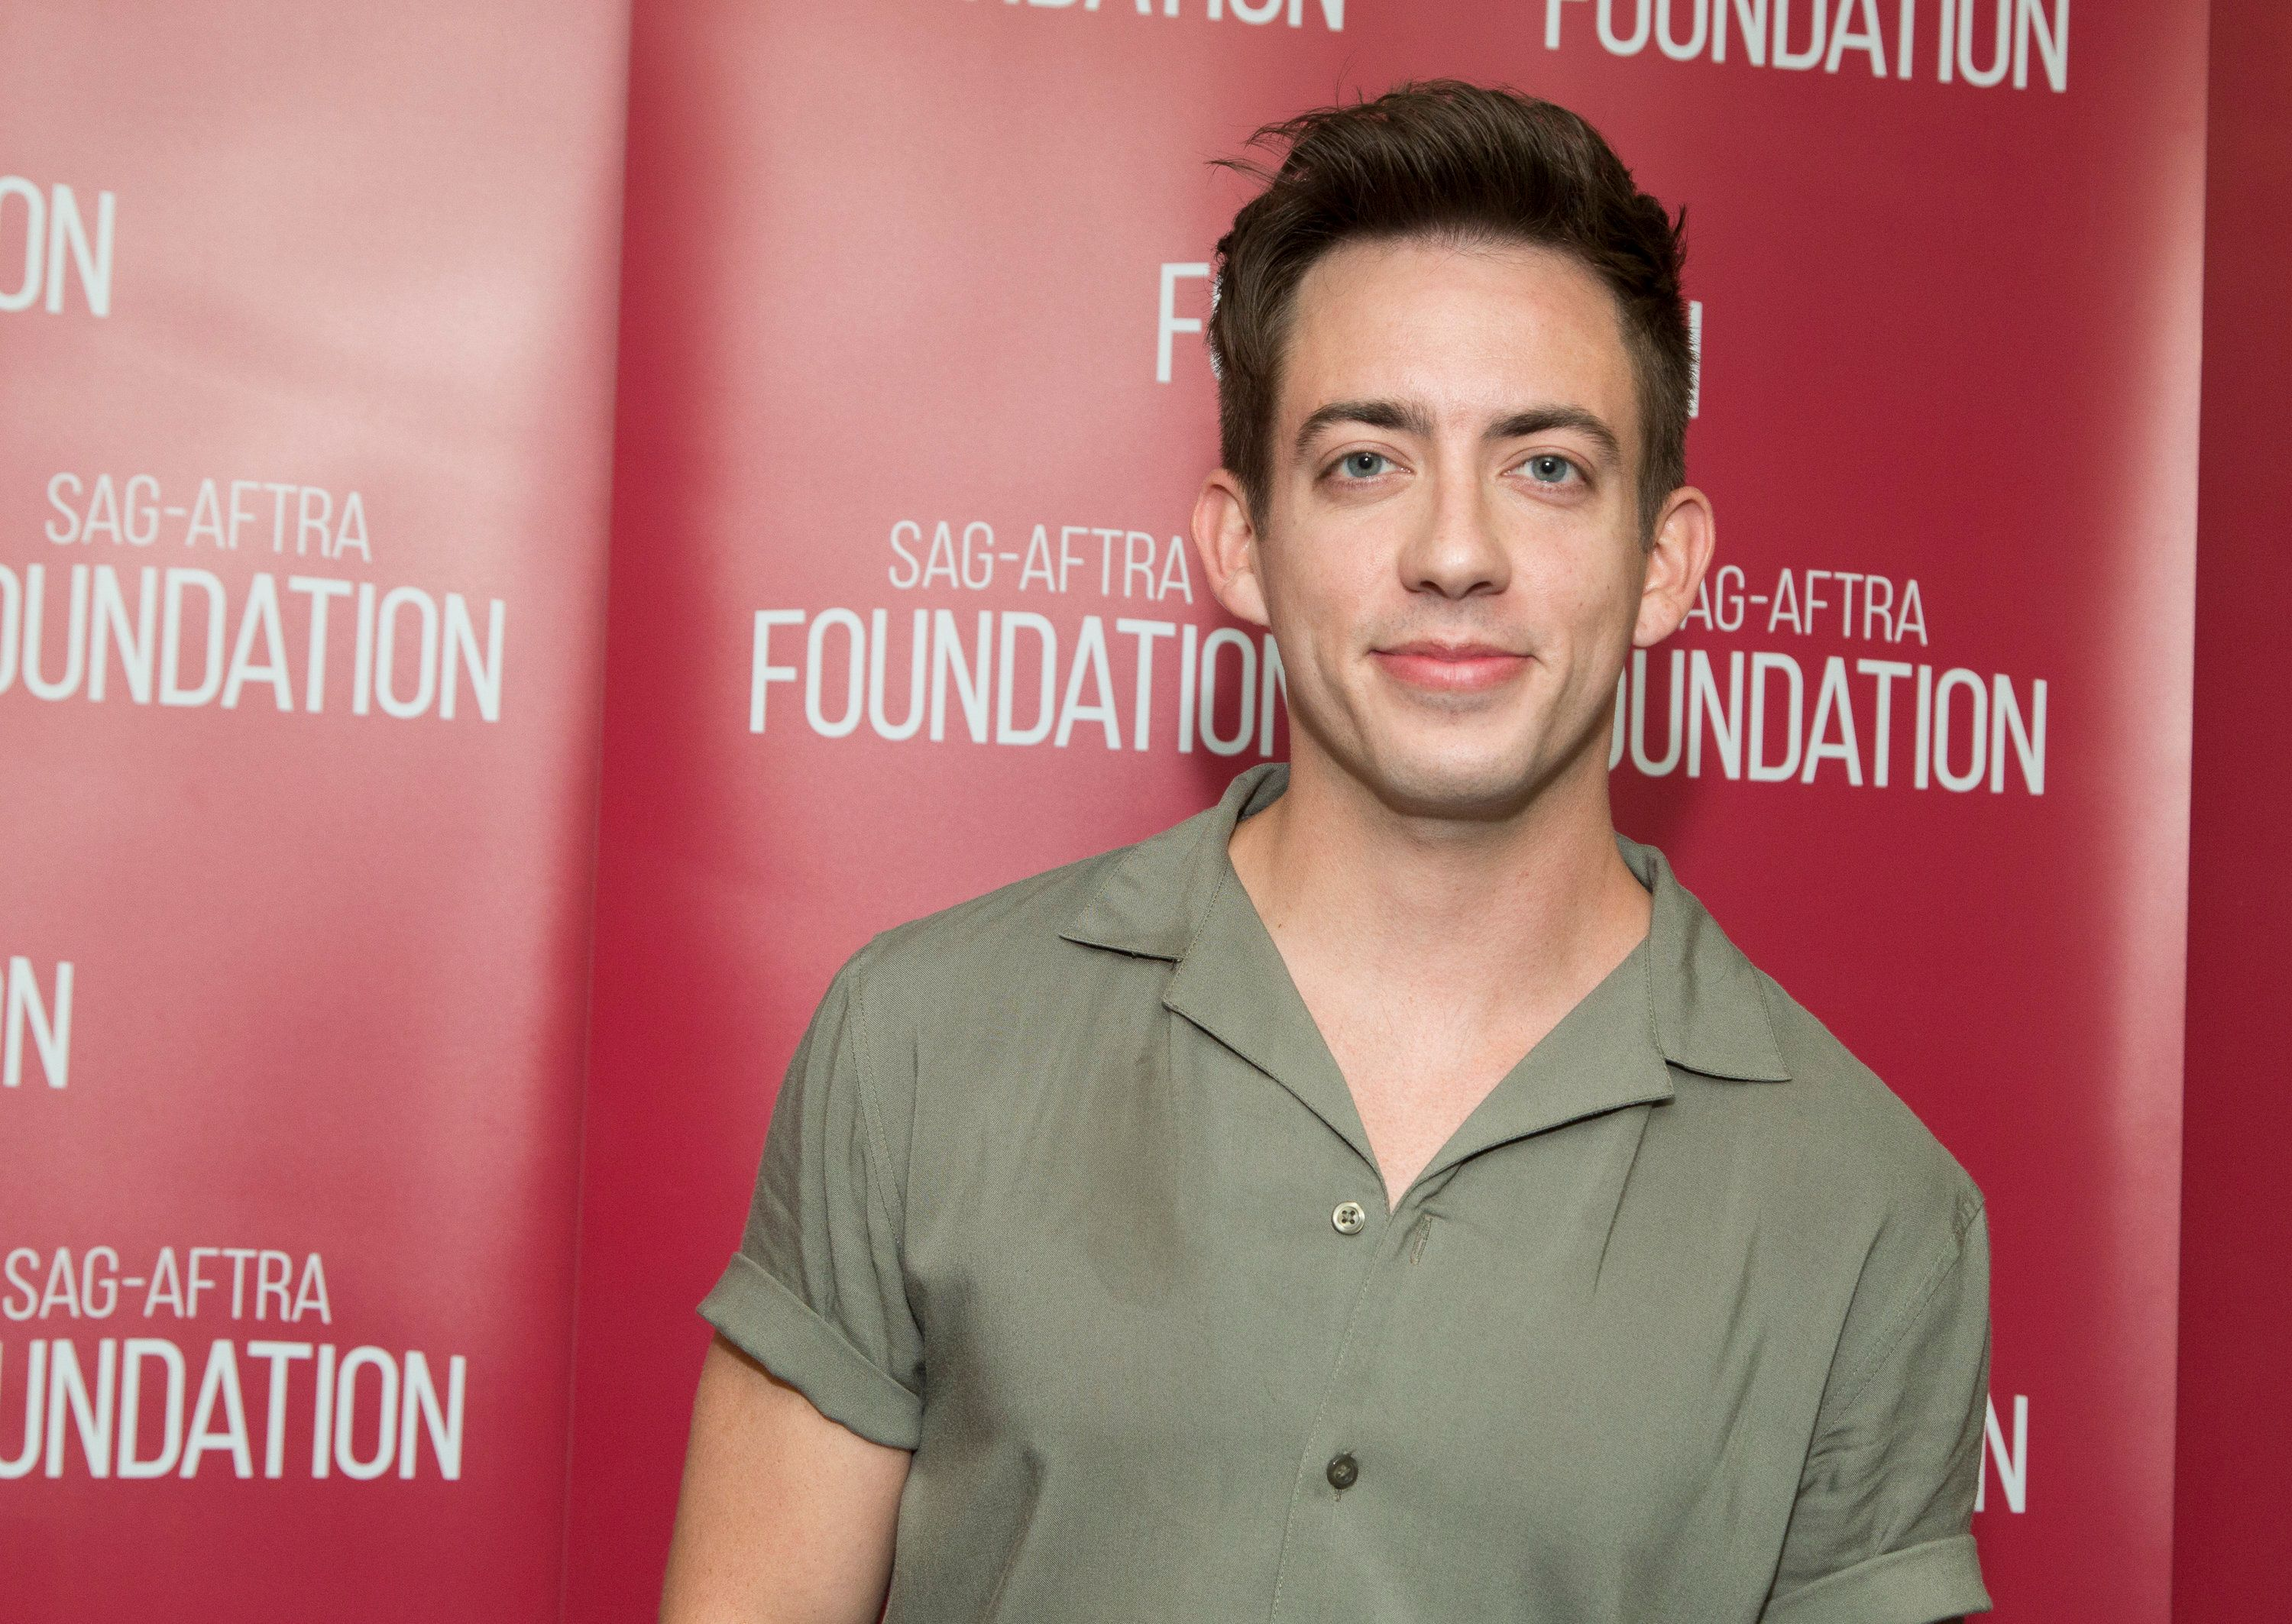 LOS ANGELES, CA - APRIL 12:  Actor Kevin McHale attends SAG-AFTRA Foundation's Conversations with 'When We Rise' at SAG-AFTRA Foundation Screening Room on April 12, 2017 in Los Angeles, California.  (Photo by Vincent Sandoval/Getty Images)